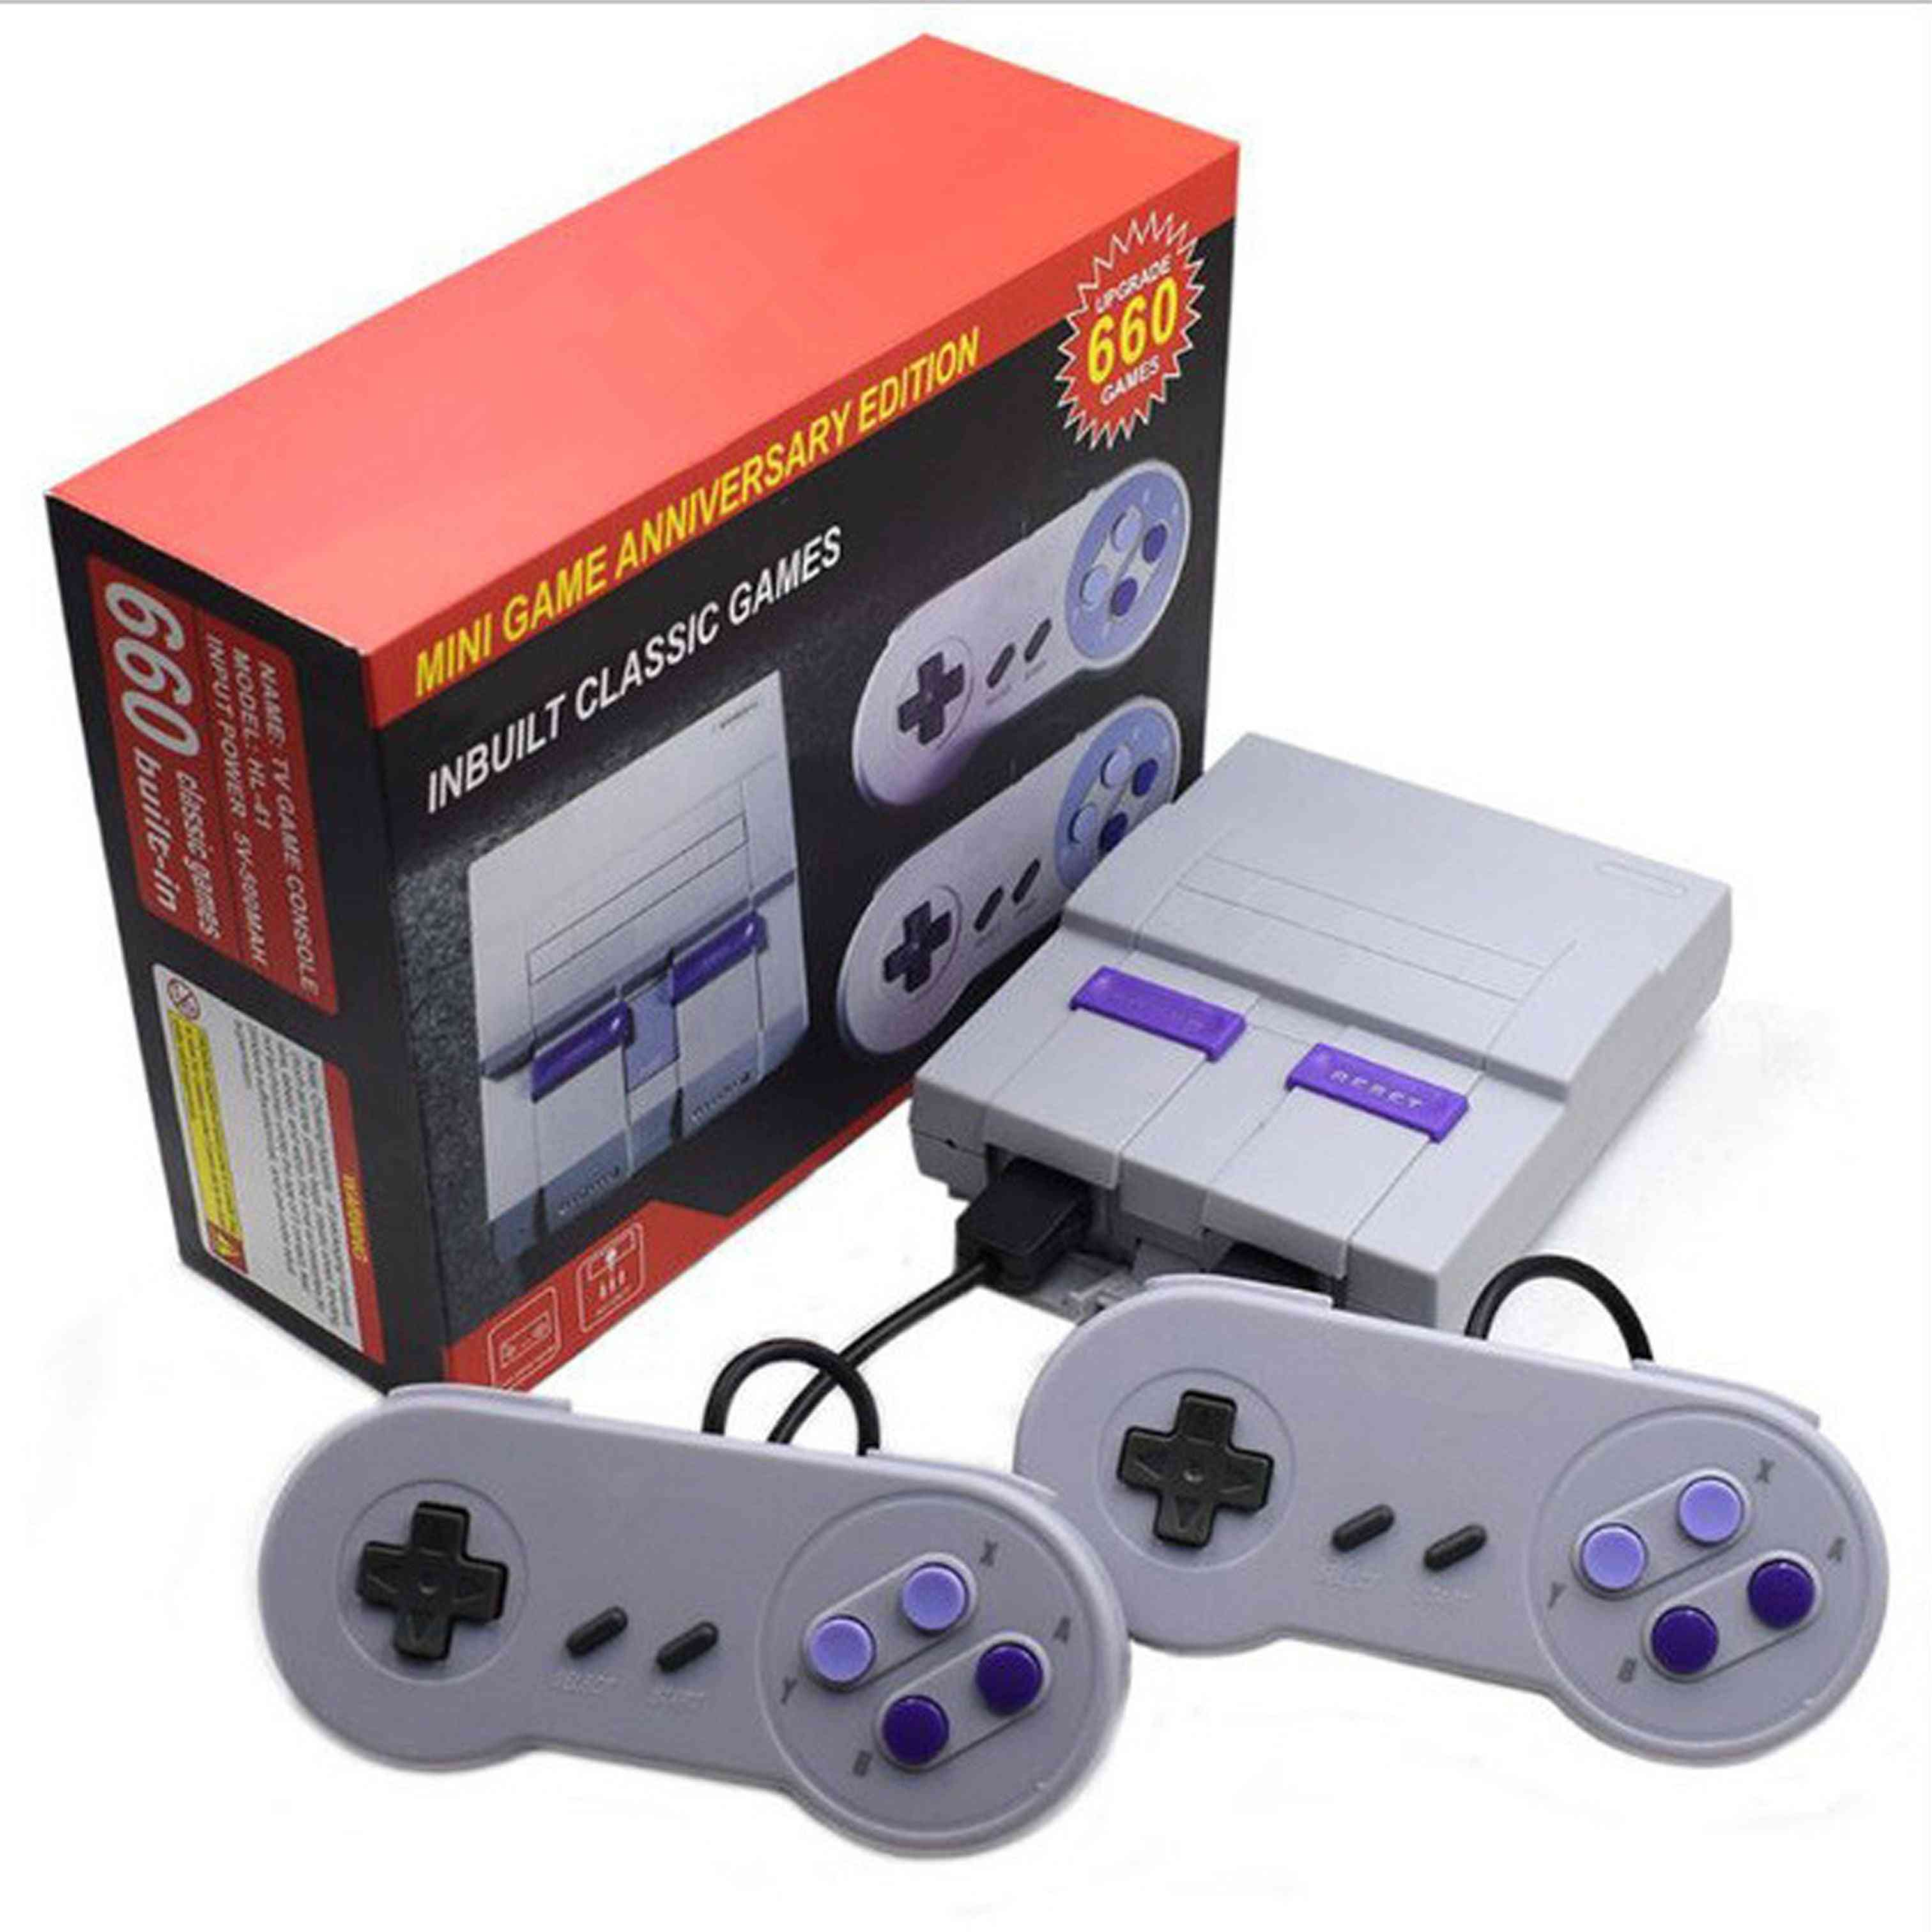 Super Classic, 8 Bit Retro, Mini Video Game And Consoles With Buit-in 660 Games With 2 Controllers